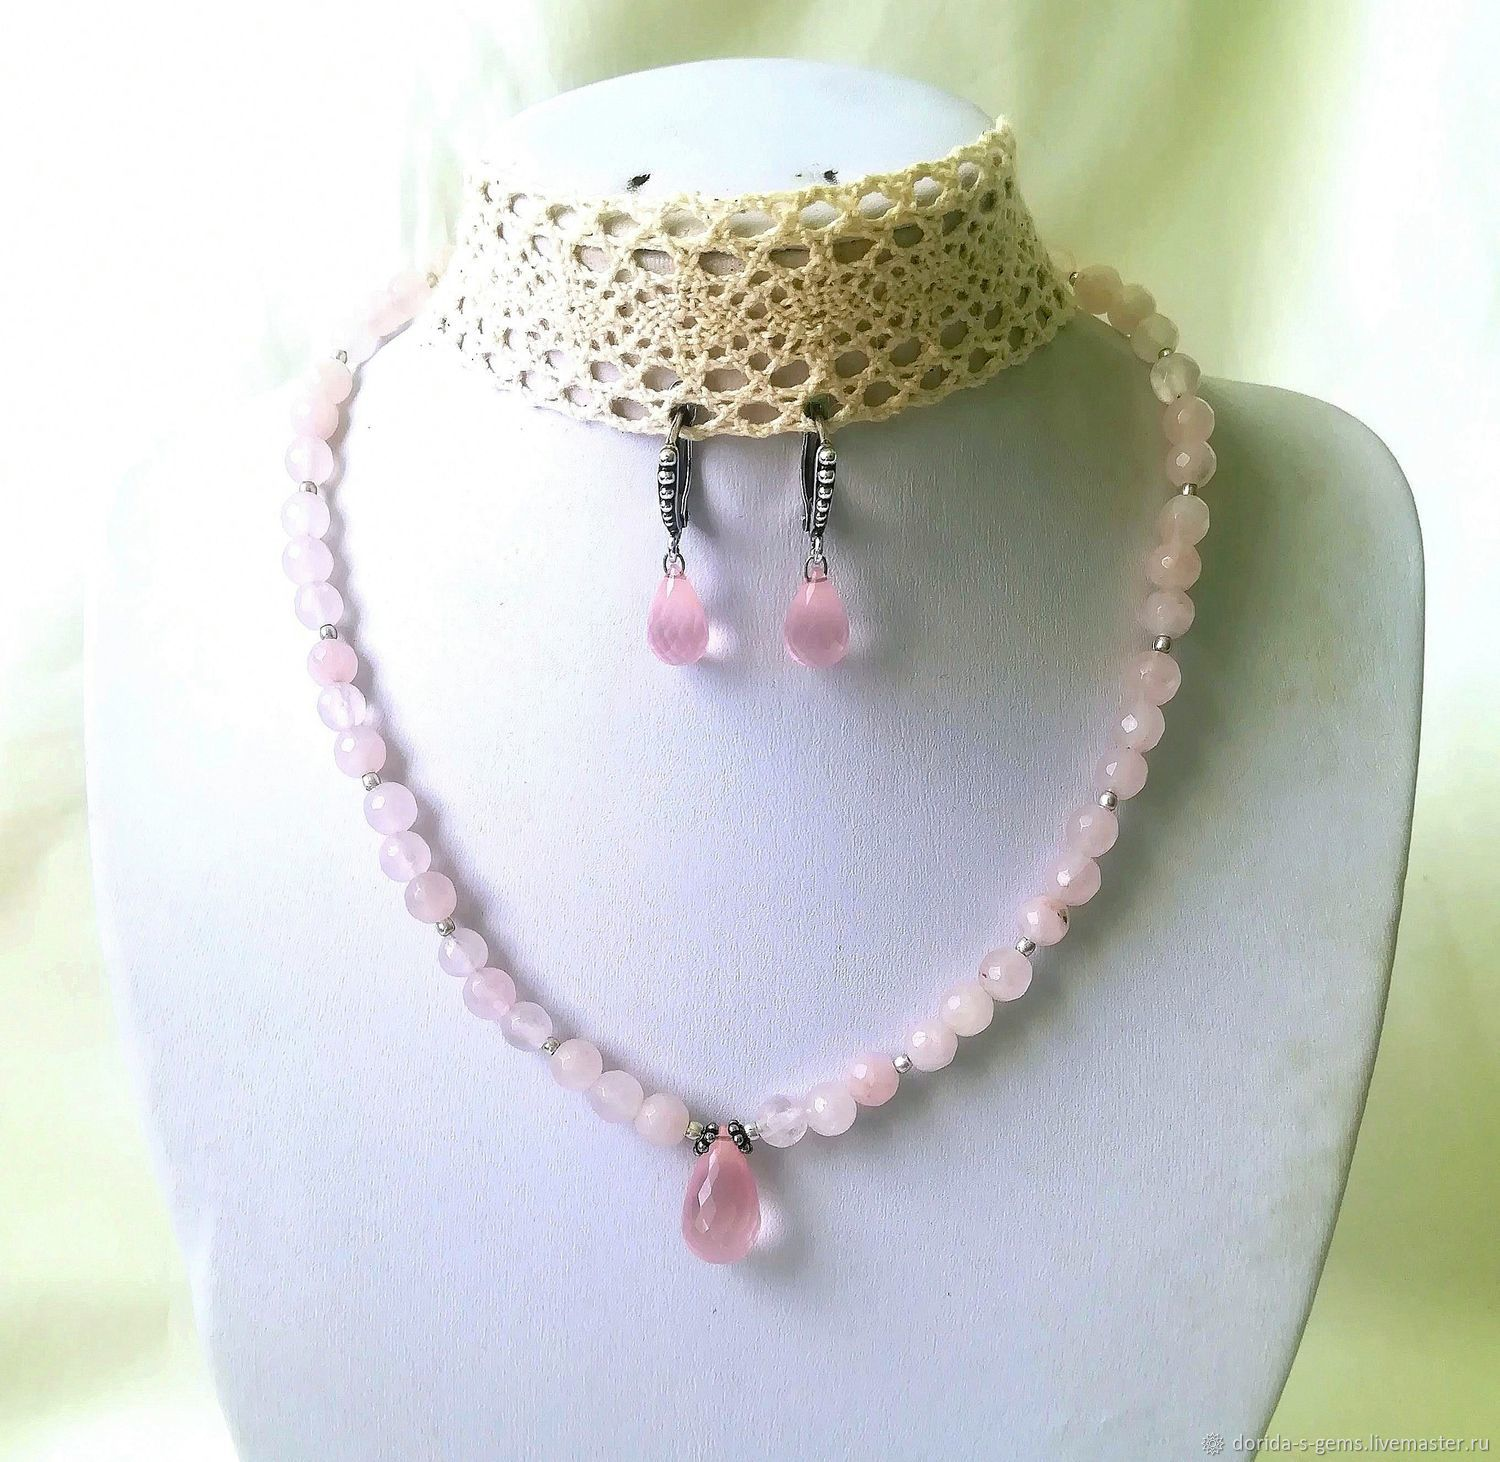 c82cd18d8 ... designer necklace, necklace for every day, necklace pink quartz, necklace  pink